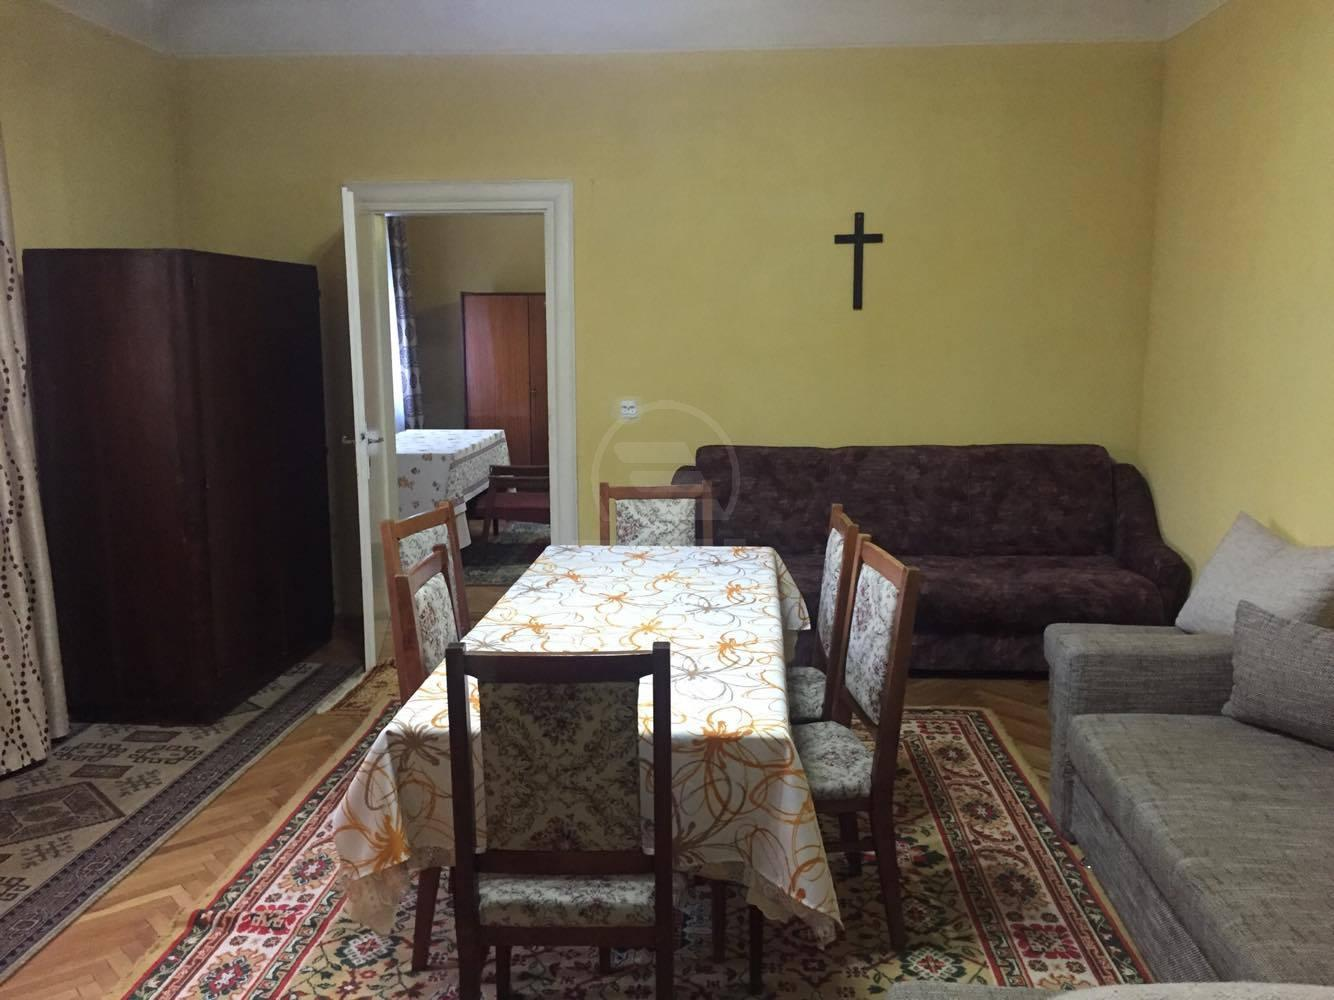 Apartment for rent 3 rooms, APCJ281600-8